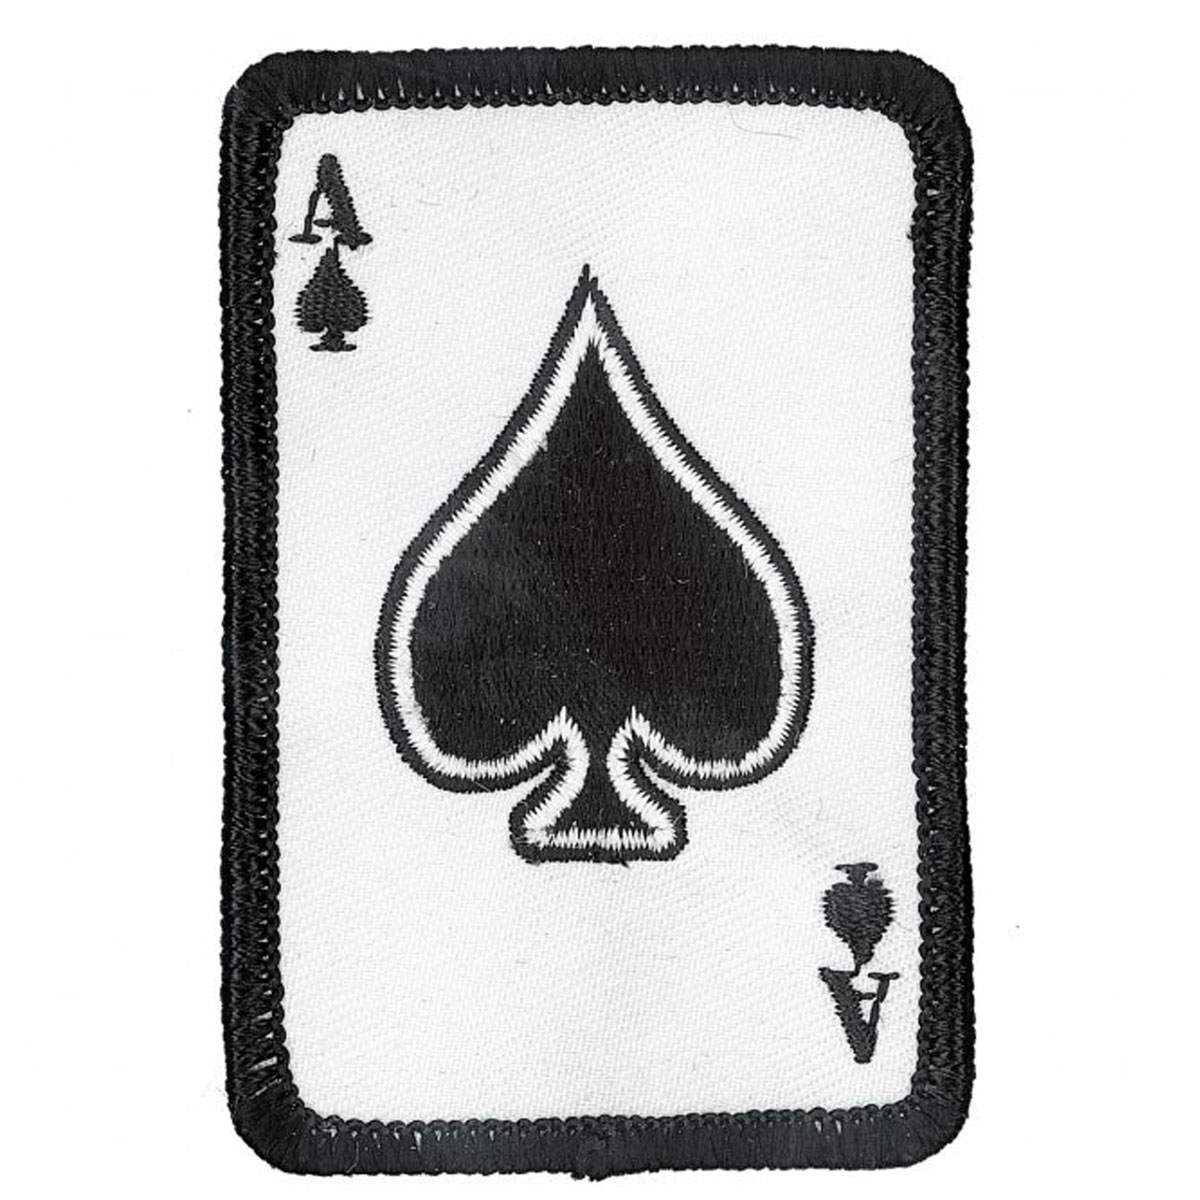 ace of spades embroidered patch 151 165 j p cycles. Black Bedroom Furniture Sets. Home Design Ideas